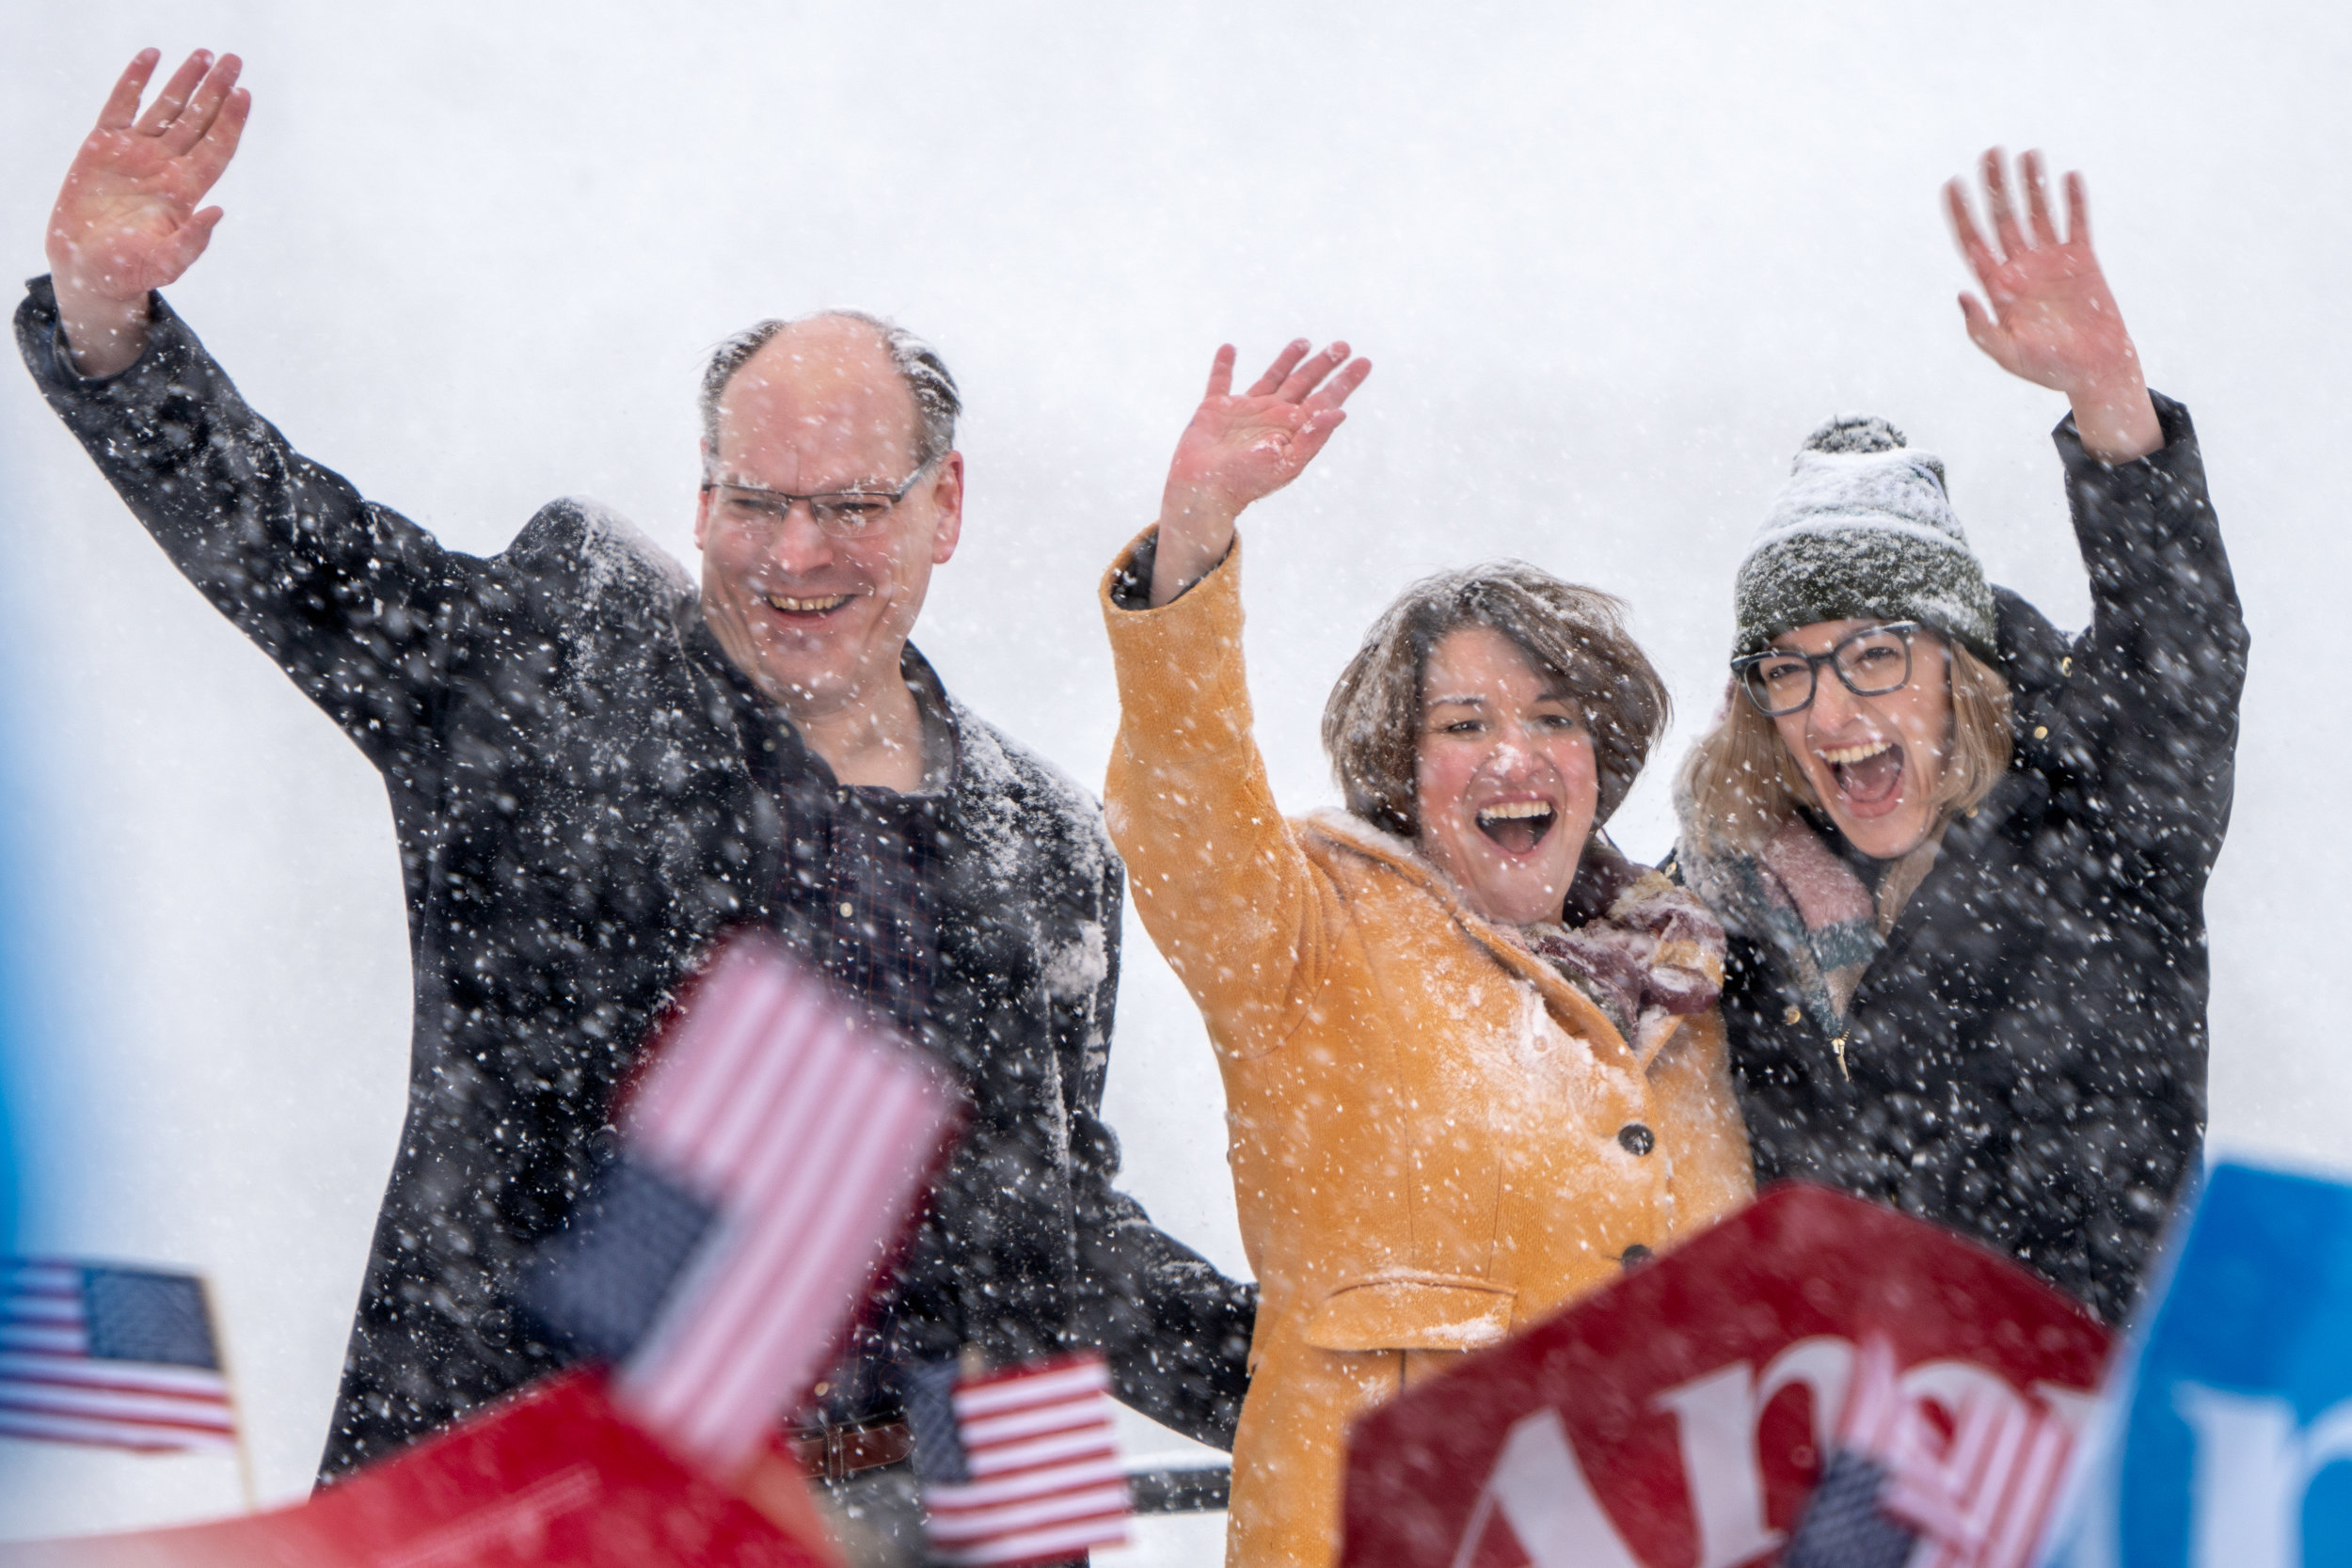 Amy Klobuchar with her husband John and daughter Abigail at her side, waves to the crowd after announcing her bid for the presidency at Boom Island Park in Minneapolis, Minnesota